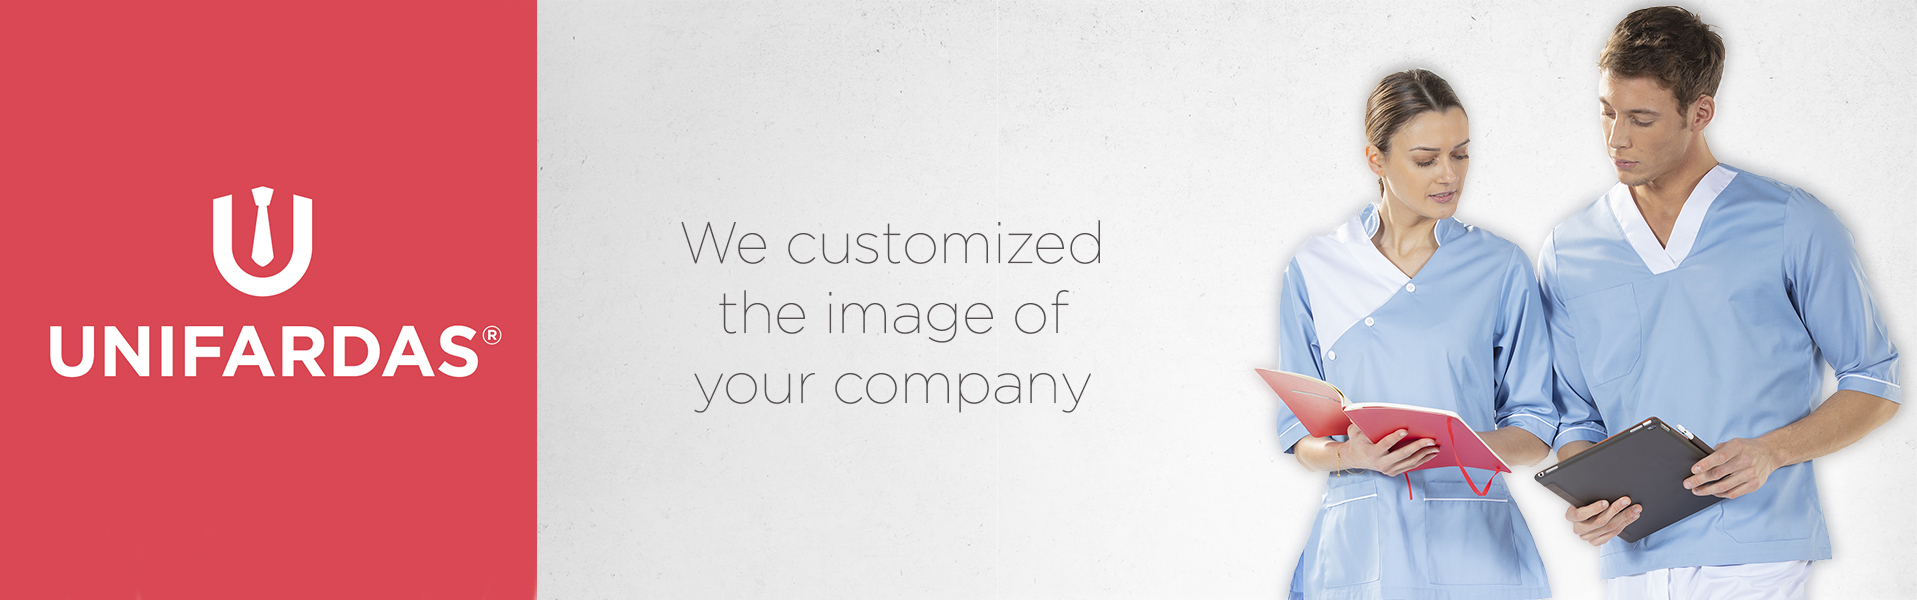 we customize the imagem of your company workwear